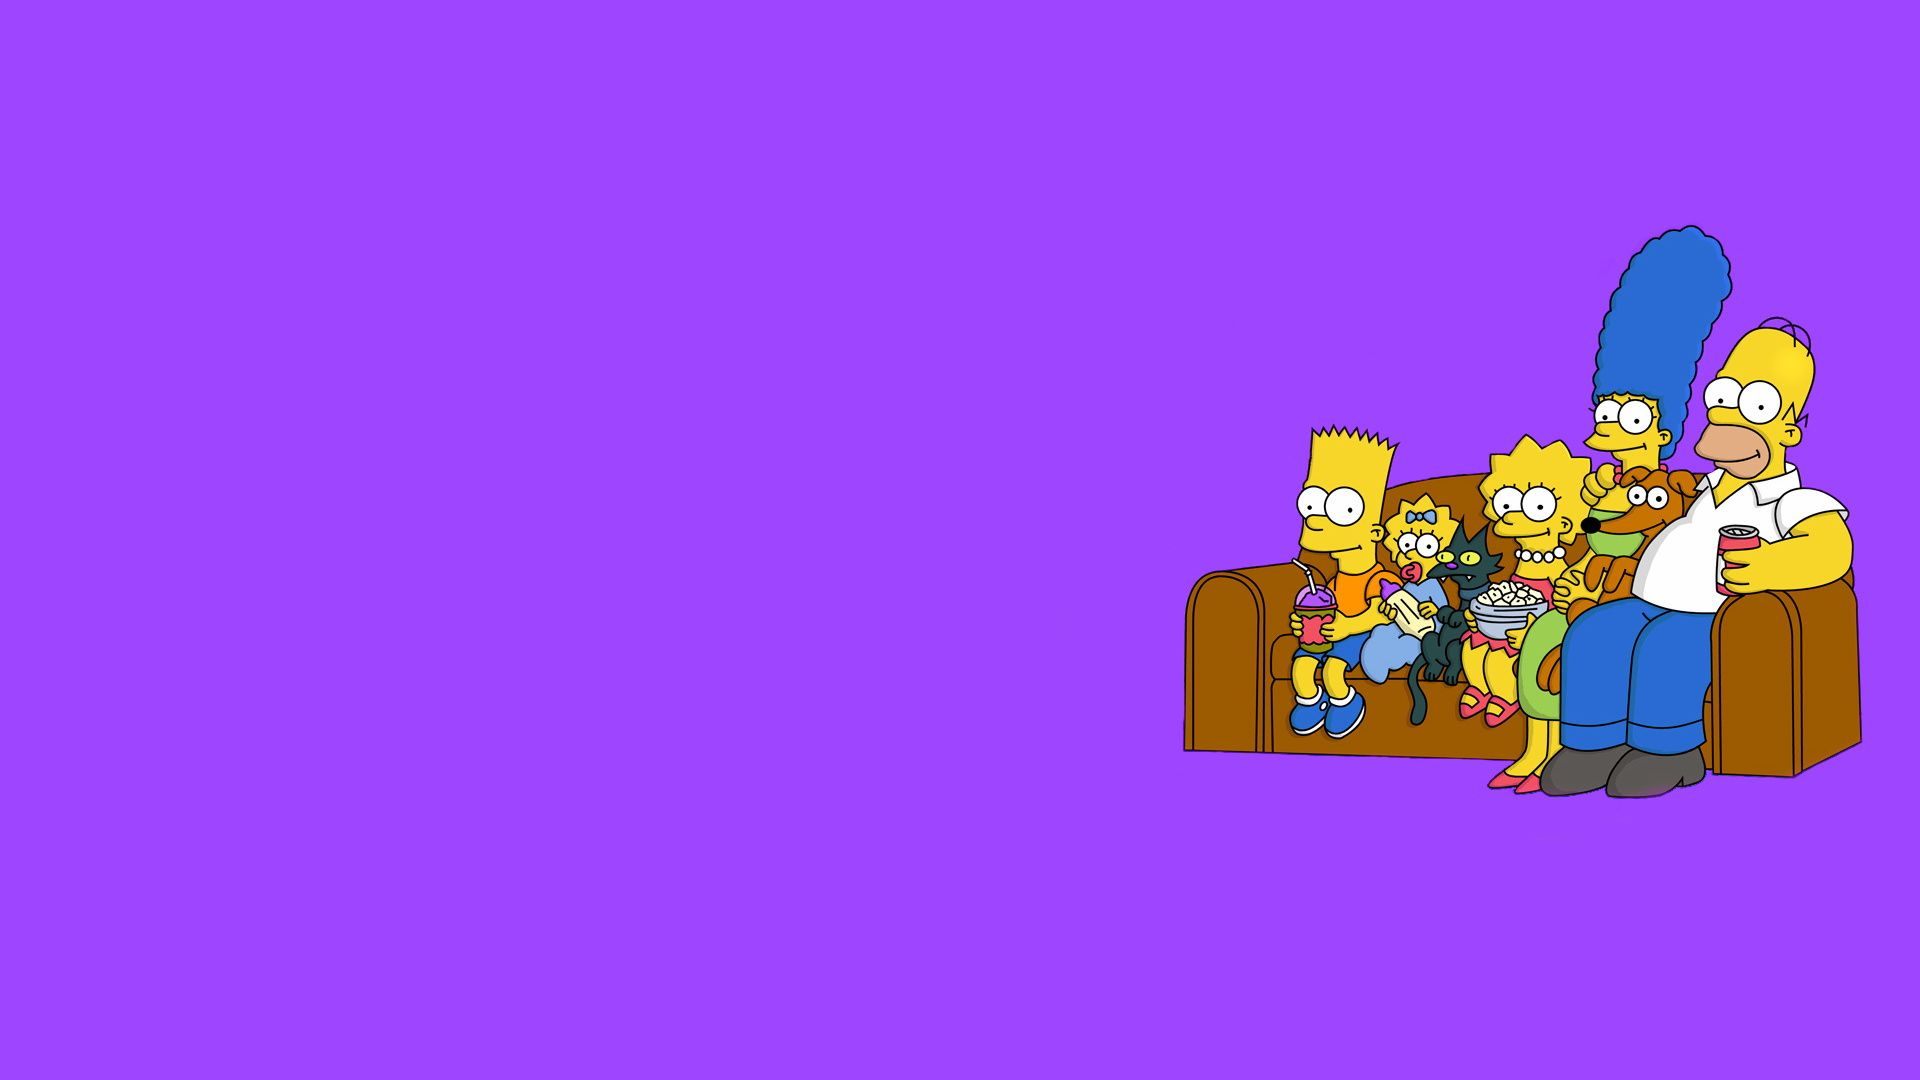 The Simpsons, Minimalism, The Simpsons, Purple Background, Sofa